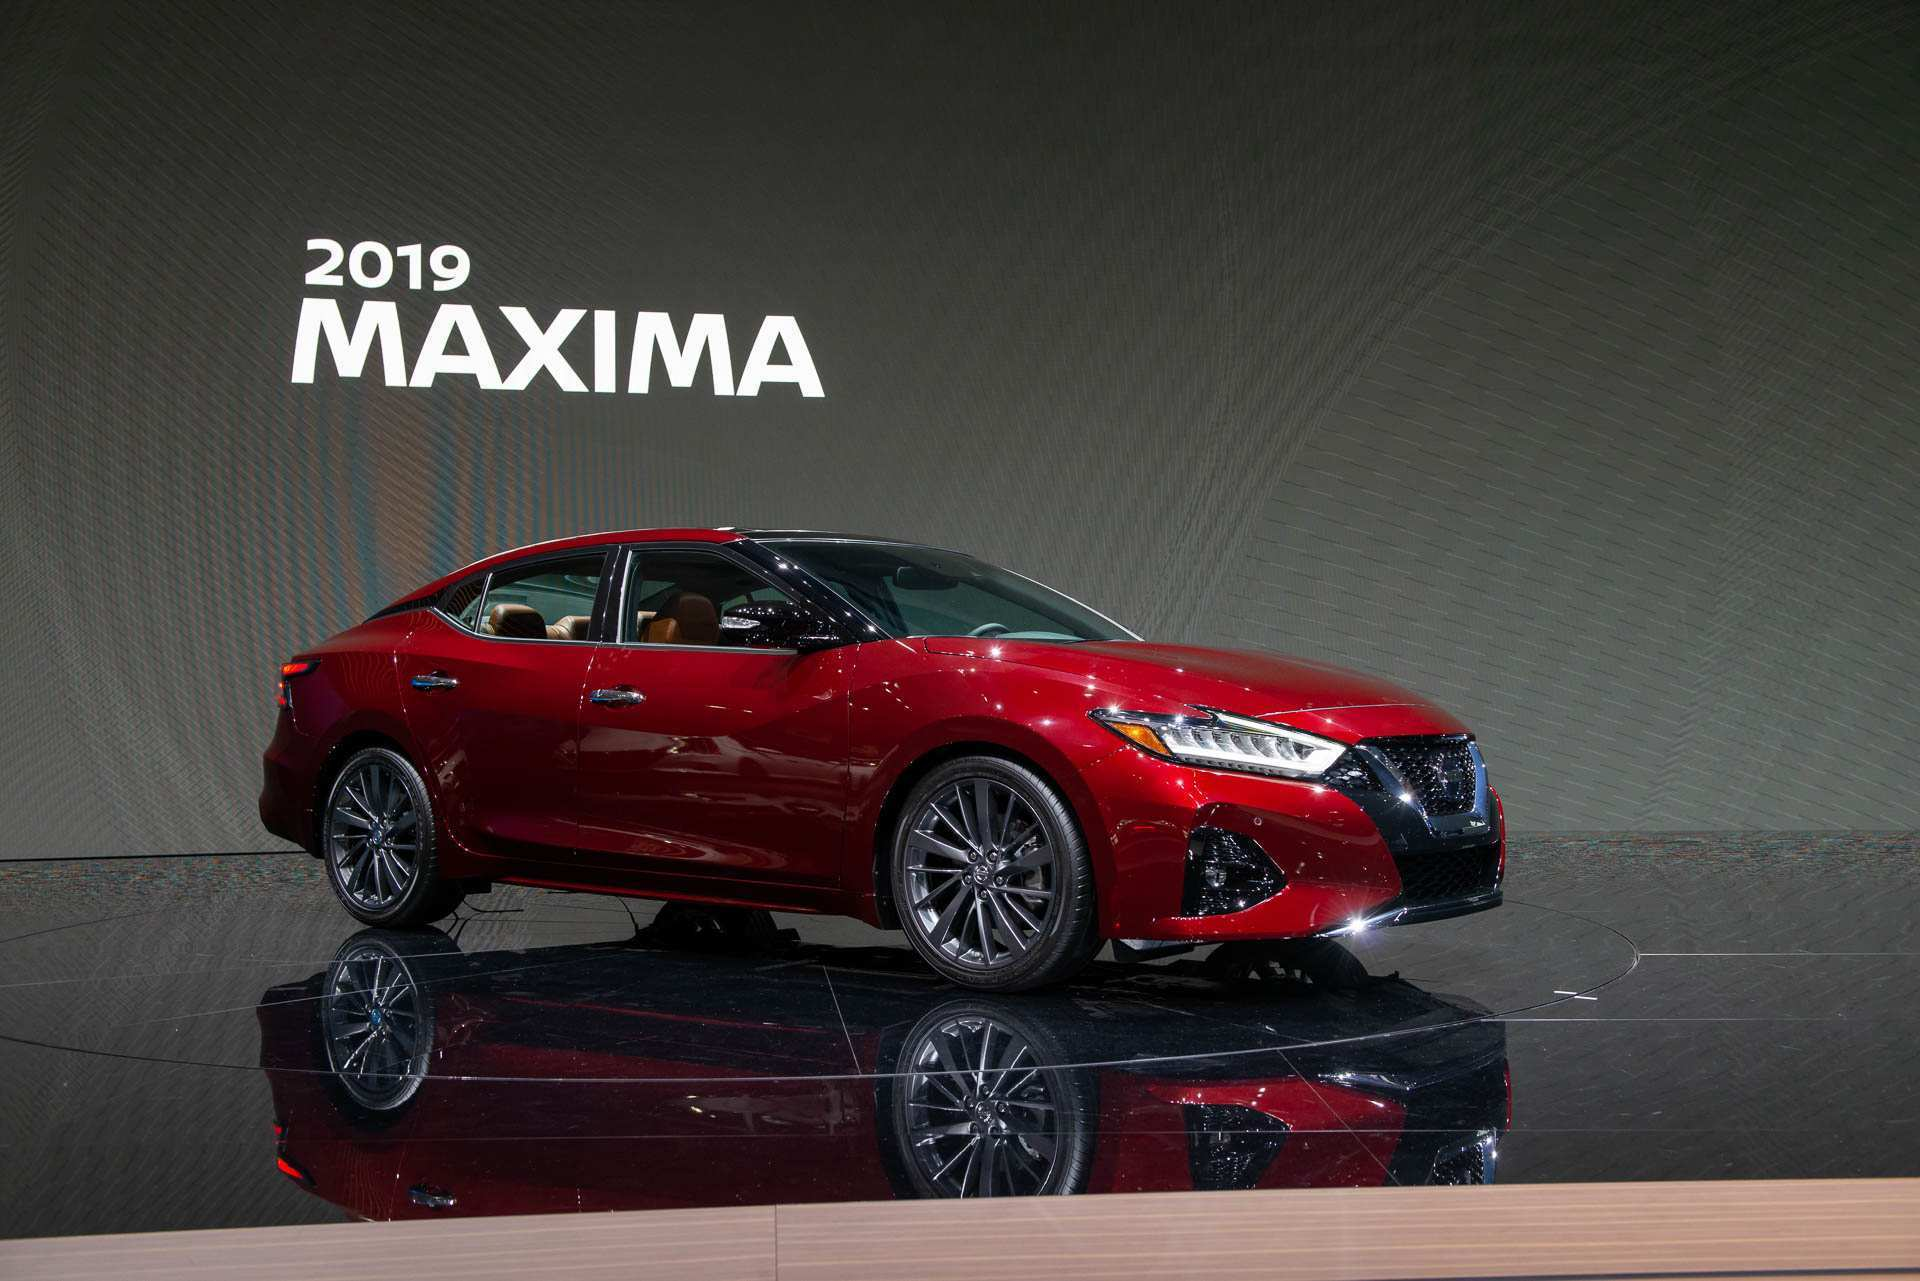 81 All New 2019 Nissan Maxima Prices